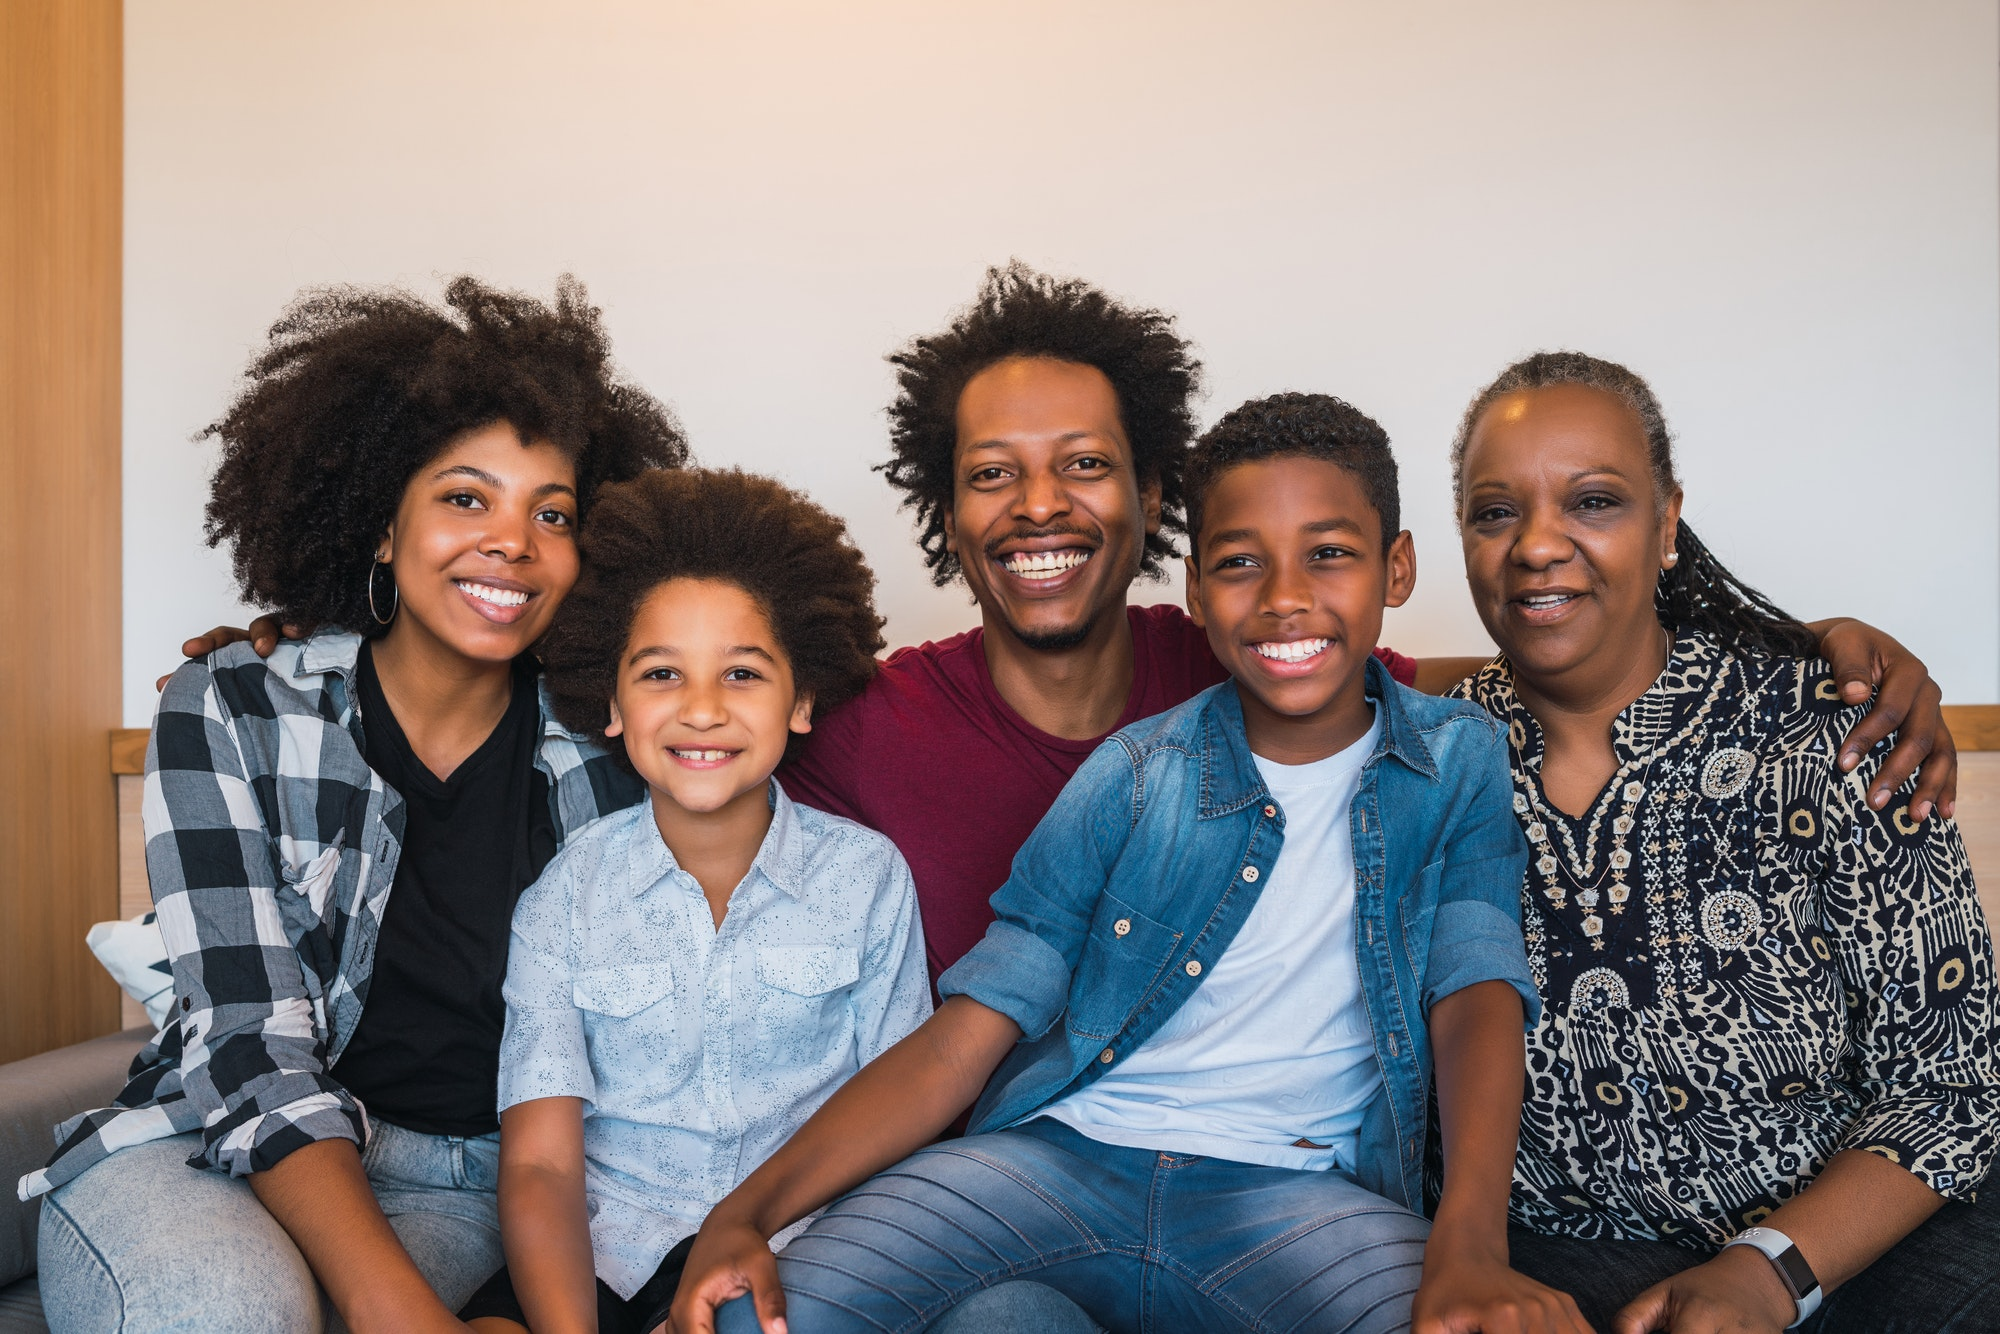 Some Welcome News for Family Visa Applicants